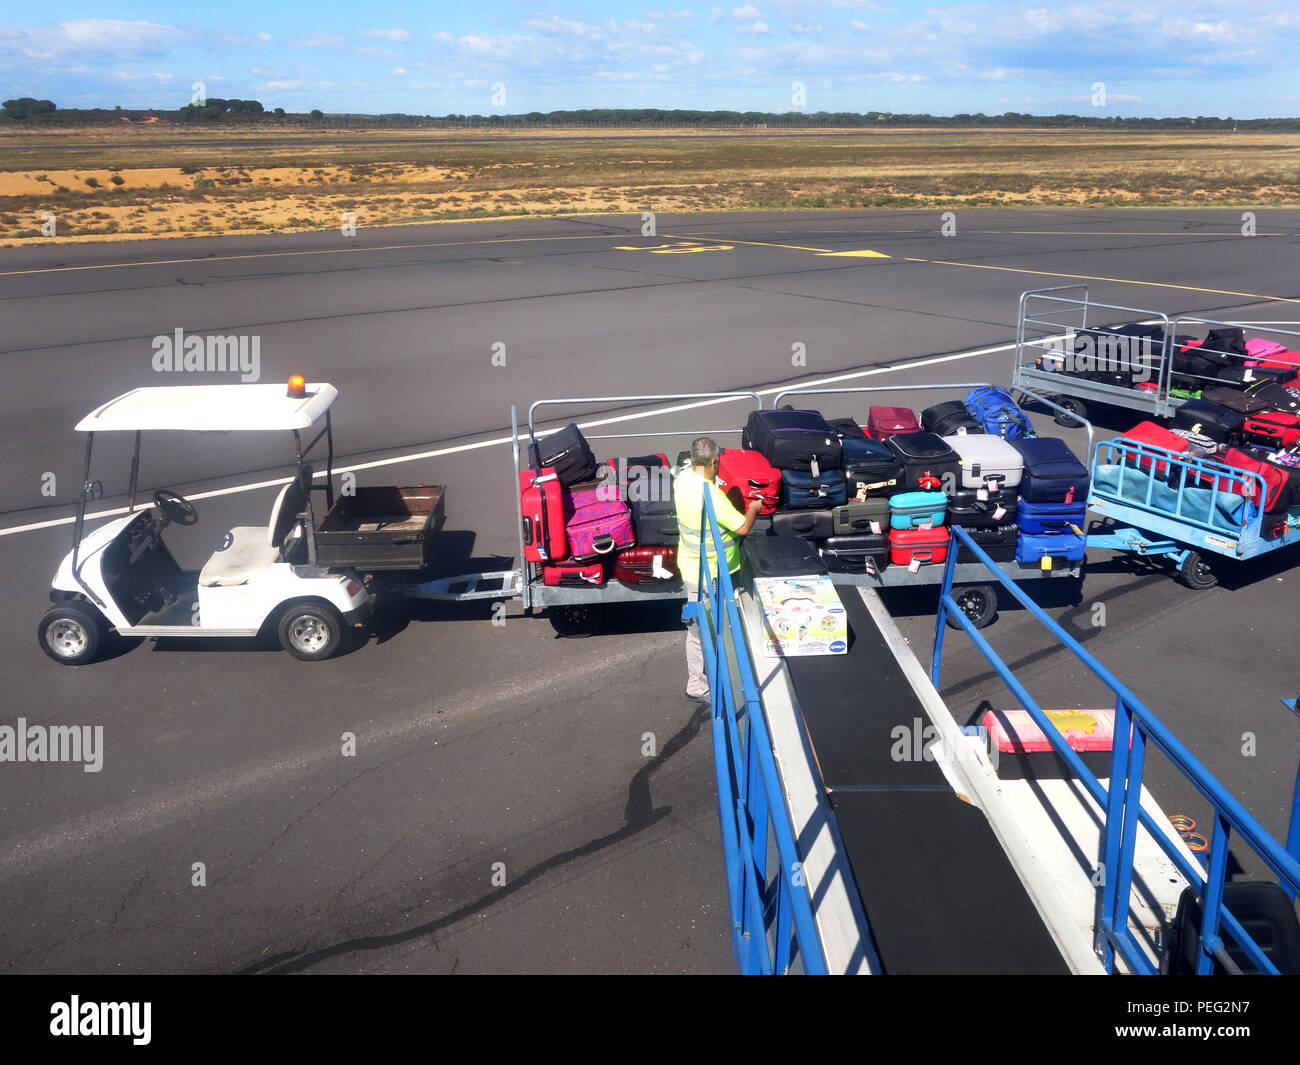 Airport handler loading baggage being put on a conveyor into a plane at Beziers Cap d'Agde Airport, France - Stock Image